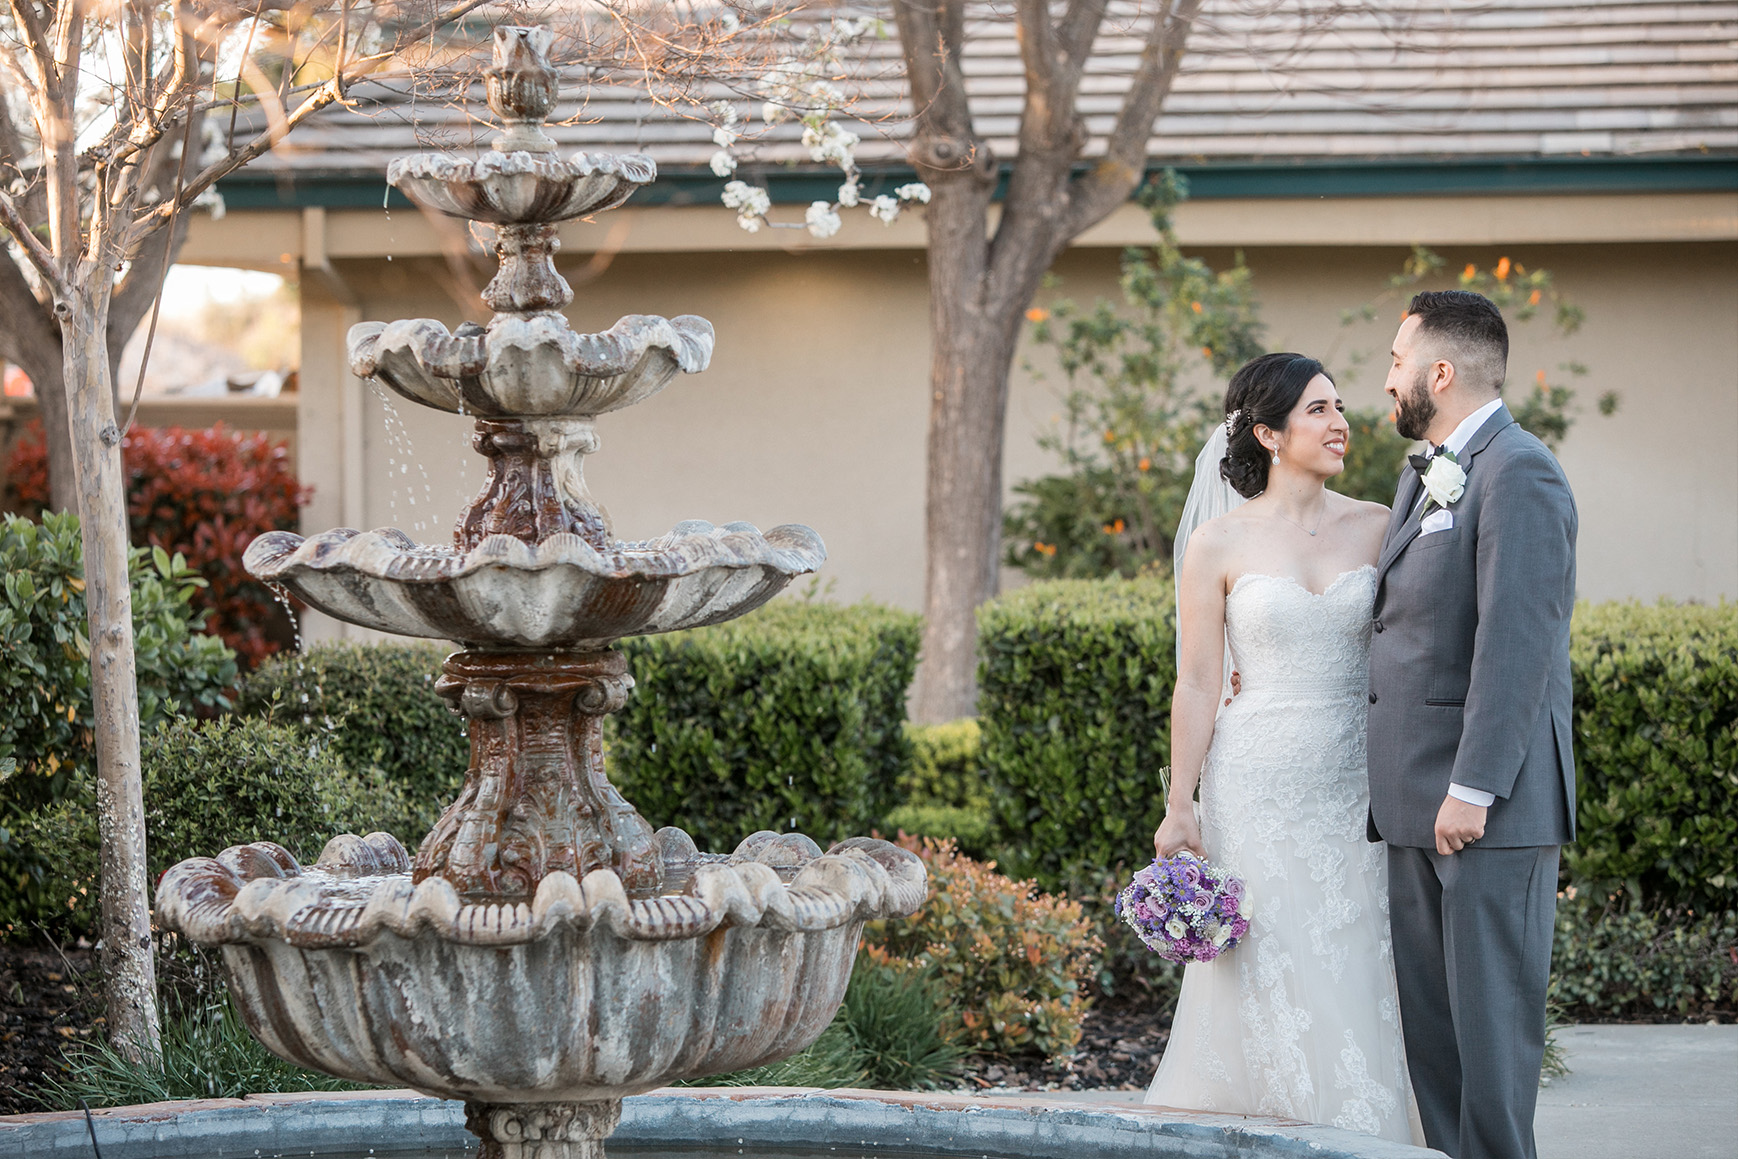 Newlyweds - Brentwood - Brentwood, California - Contra Costa County - Wedgewood Weddings